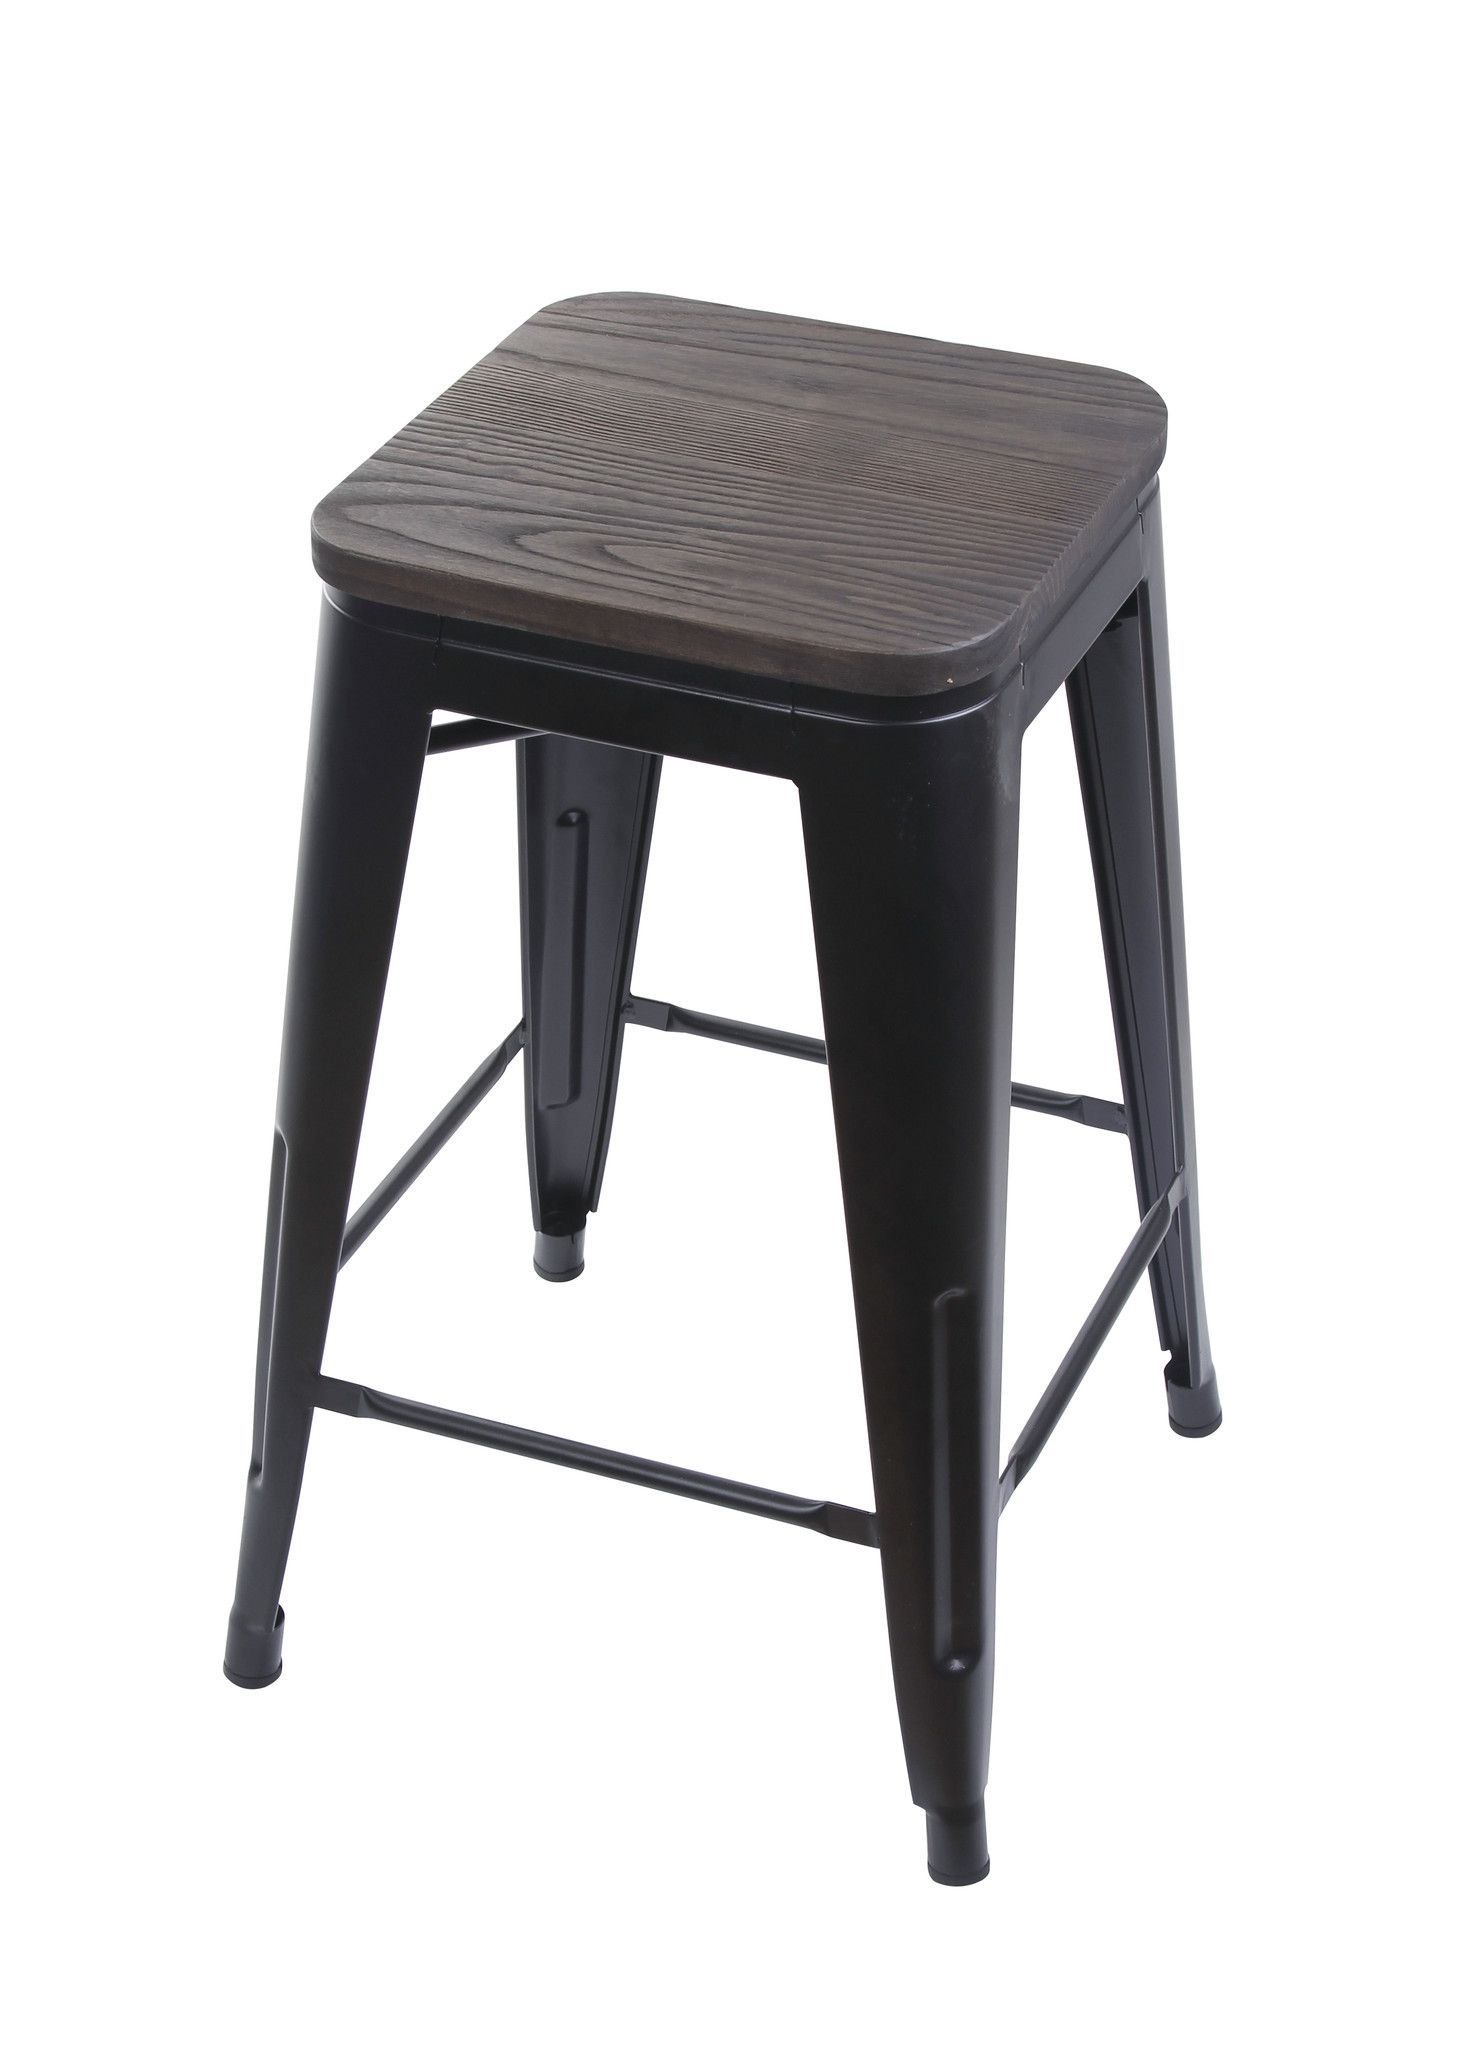 Astounding 24 Metal Stool With Wood Seat Products Metal Stool Pabps2019 Chair Design Images Pabps2019Com